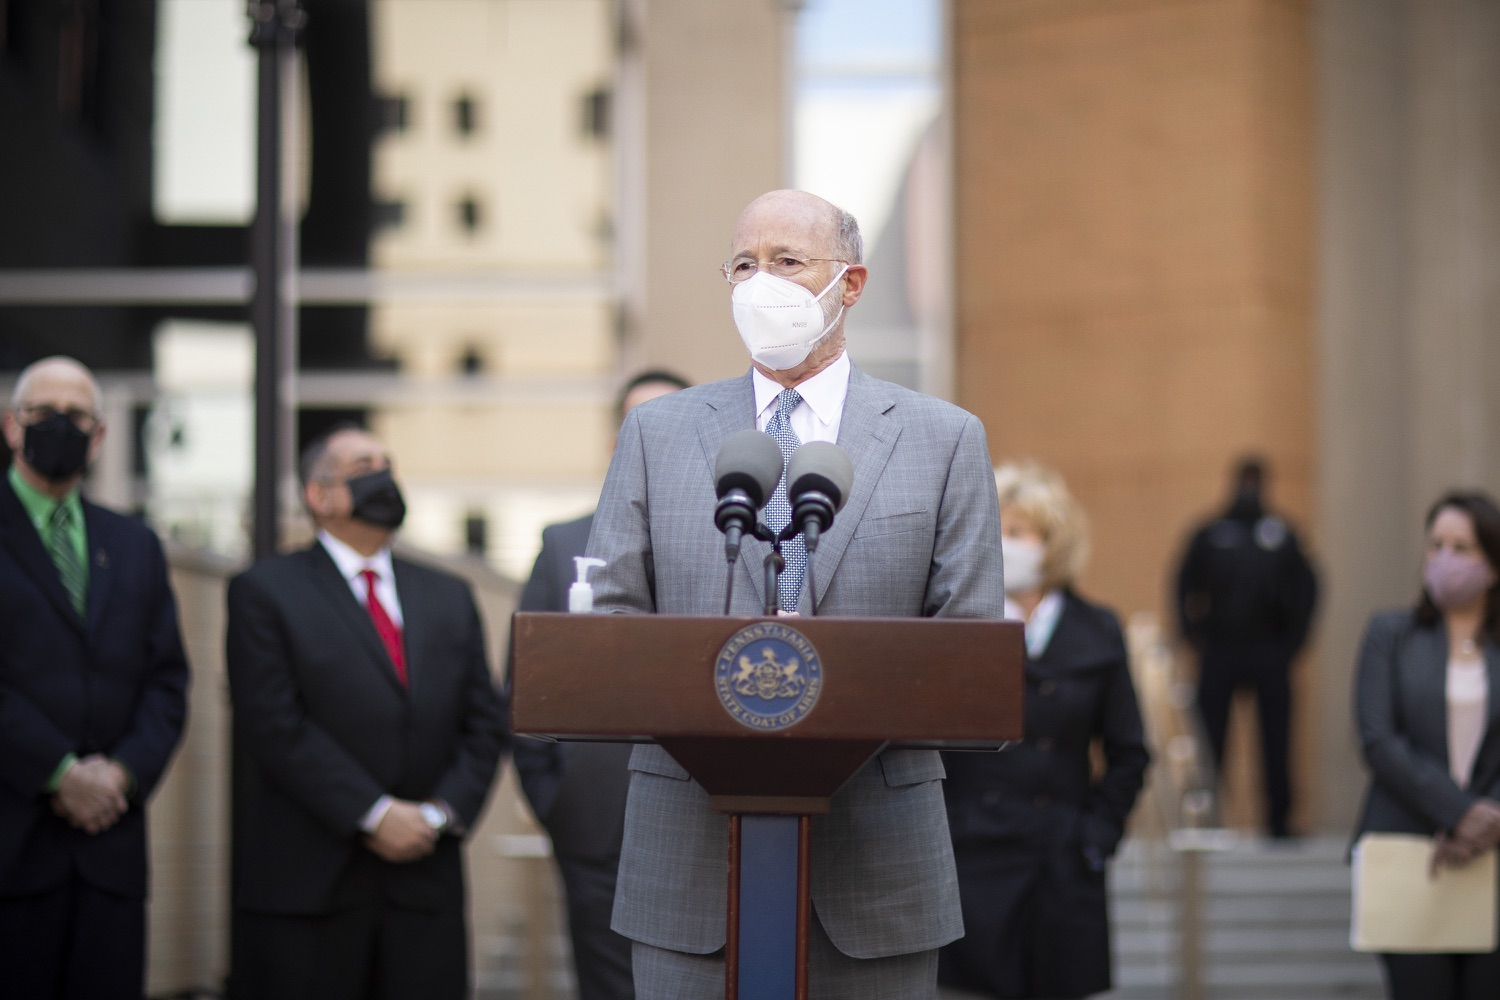 """<a href=""""https://filesource.wostreaming.net/commonwealthofpa/photo/18688_gov_vaccines_dz_013.jpg"""" target=""""_blank"""">⇣Download Photo<br></a>Pennsylvania Governor Tom Wolf speaking with the press.  .As Pennsylvania continues its accelerated COVID-19 vaccination plan, Pennsylvanians who are not able to leave their homes must be reached, and various state agencies and community groups are helping. Governor Tom Wolf visited Reading to talk about how the state and its partners are using various means to reach people not able to leave home to be vaccinated against COVID-19.  APRIL 26, 2021 - READING, PA"""